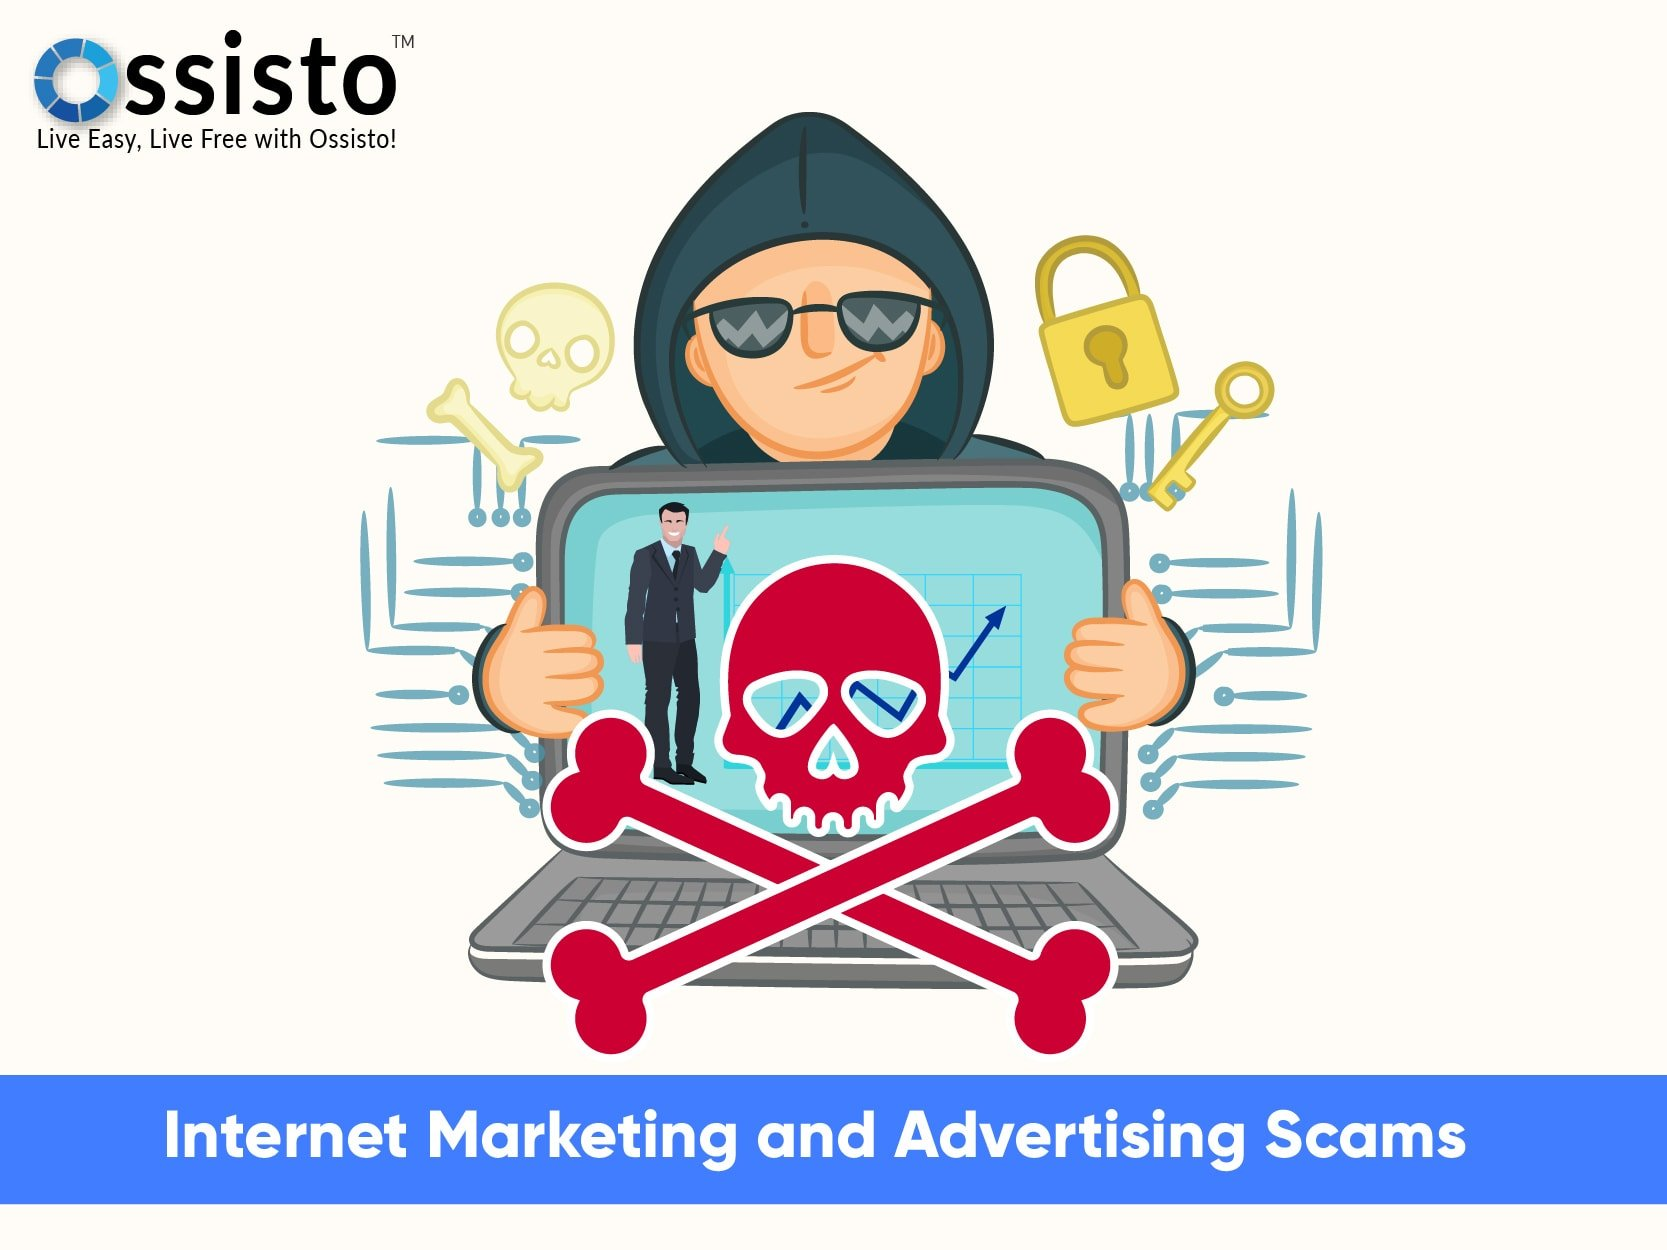 Internet Marketing and Advertising Scams